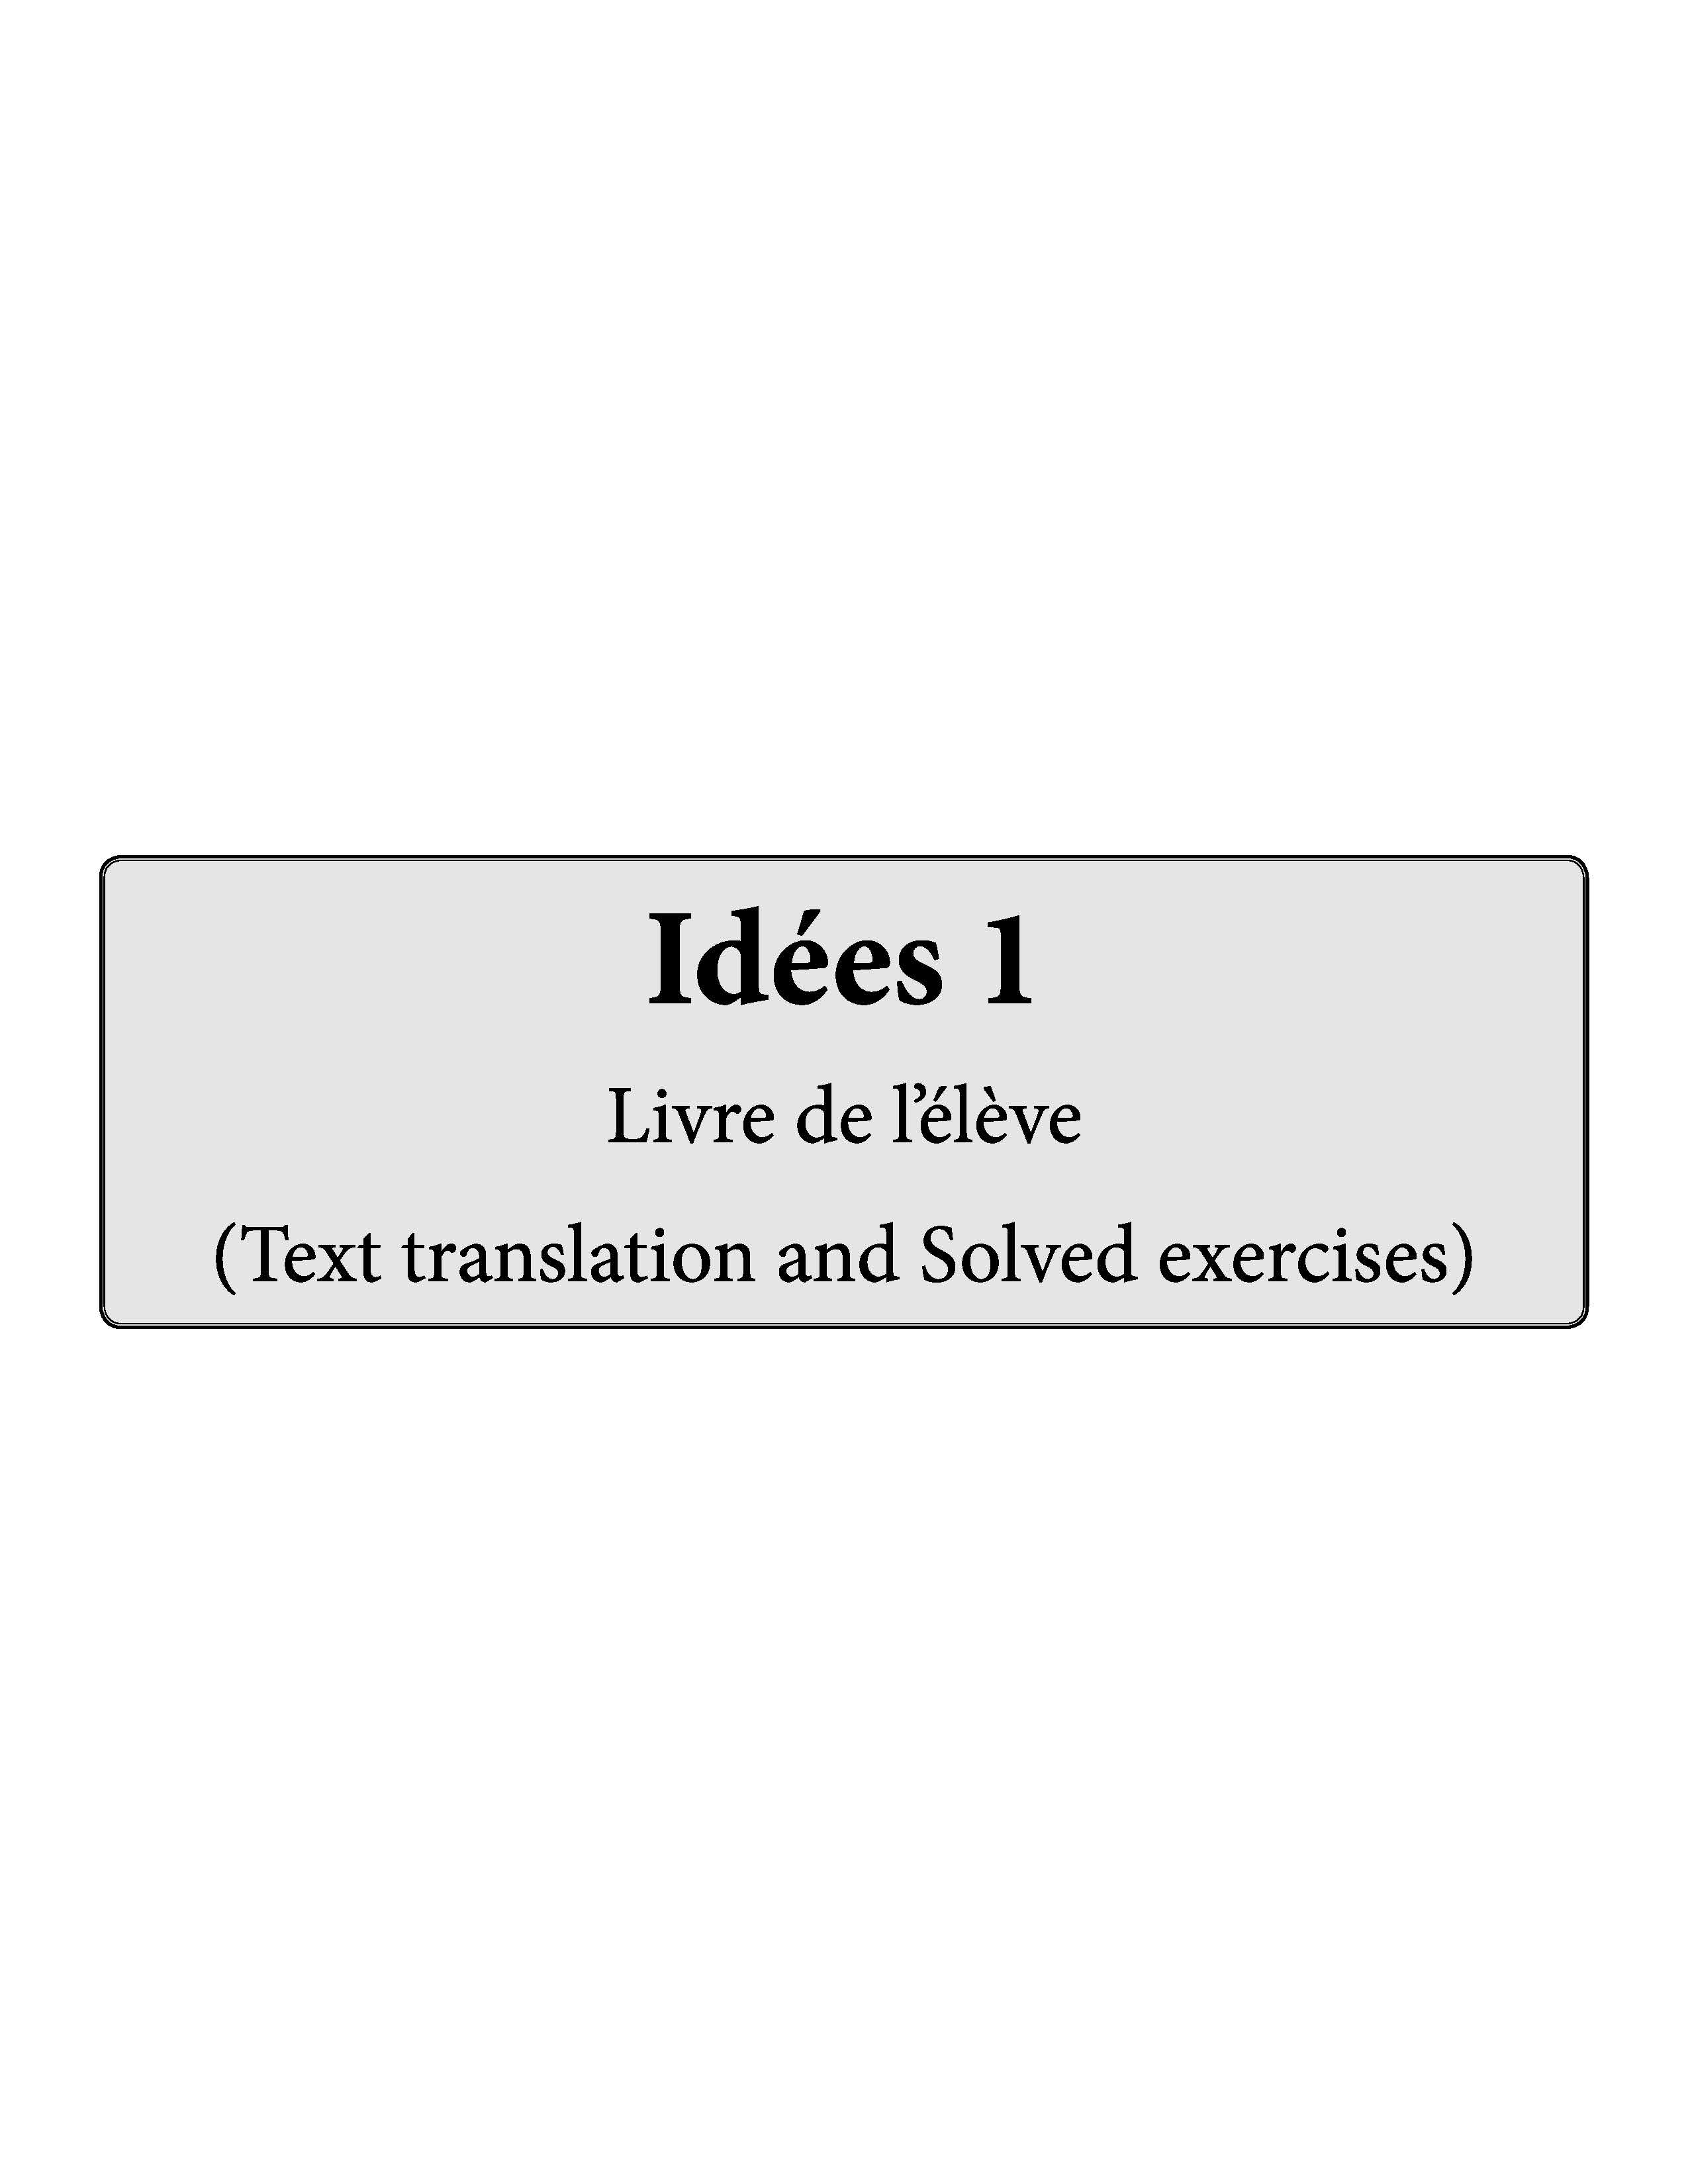 Idées Complete Study Material 1 (For Class 6) Text Translation